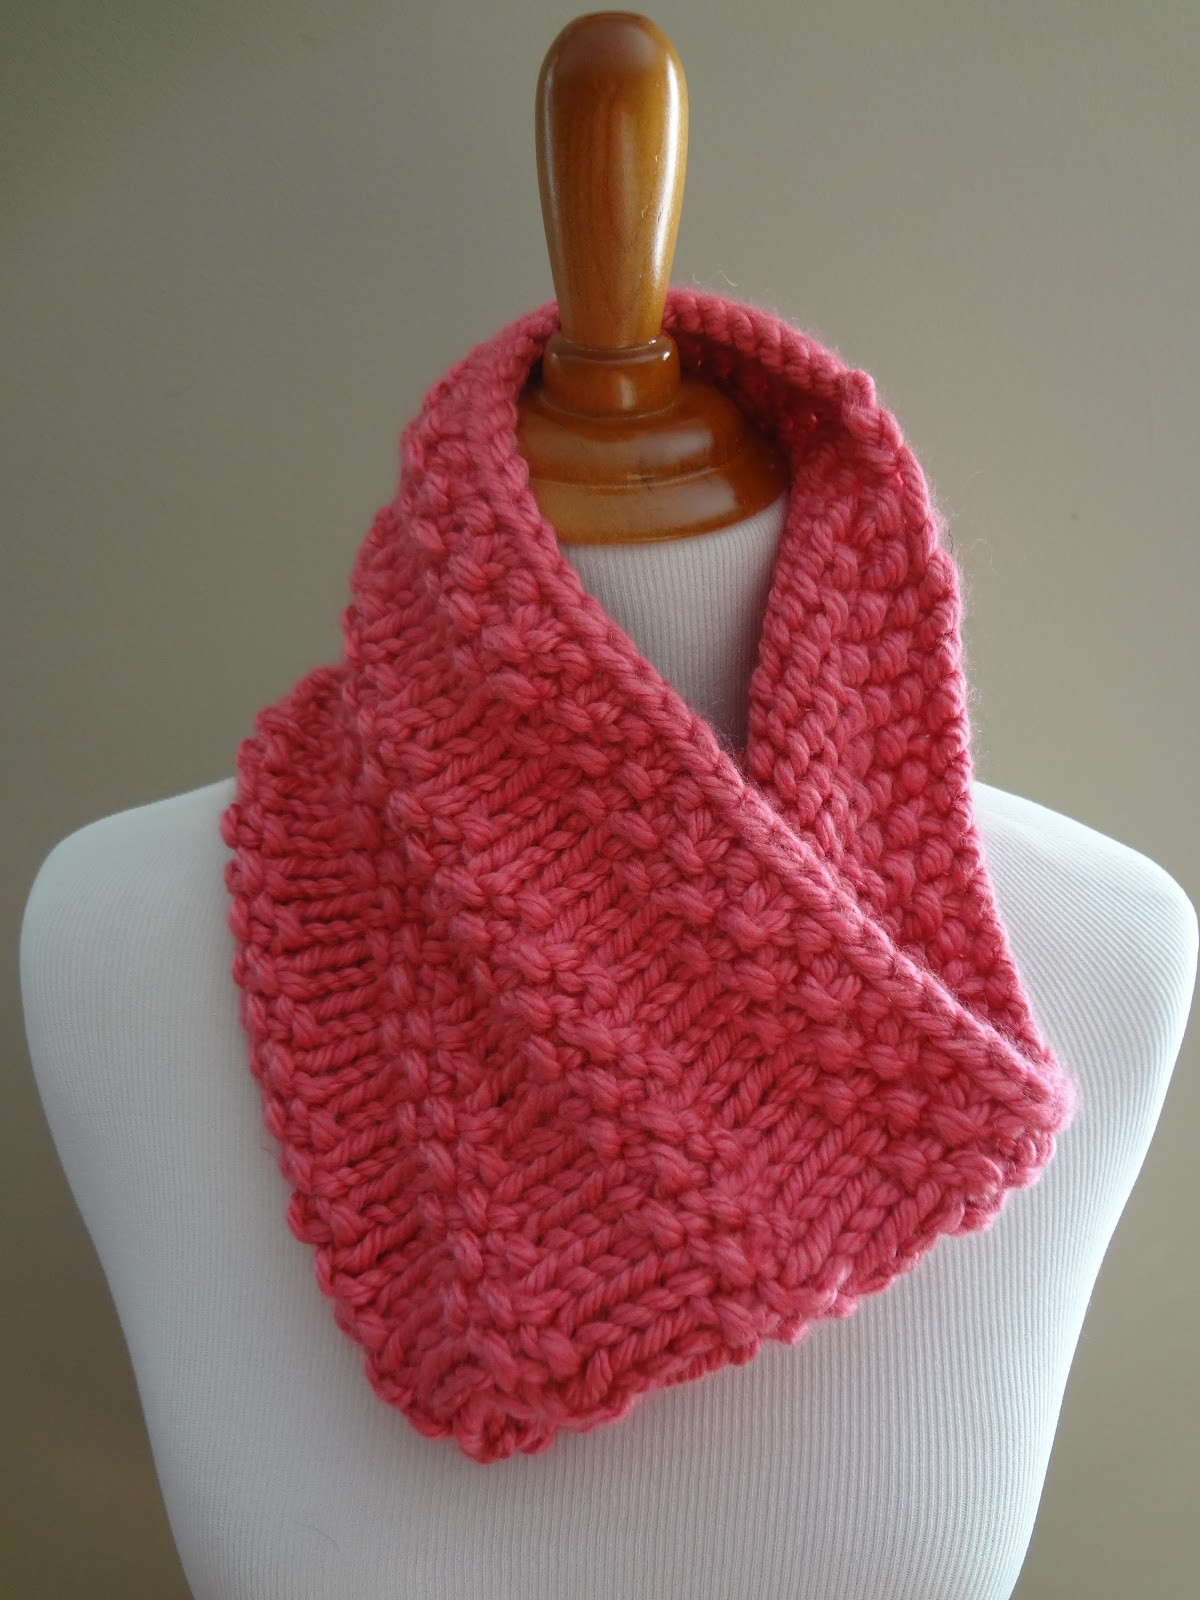 Knitting Crochet Patterns : Knit Cowl Pattern A Knitting Blog